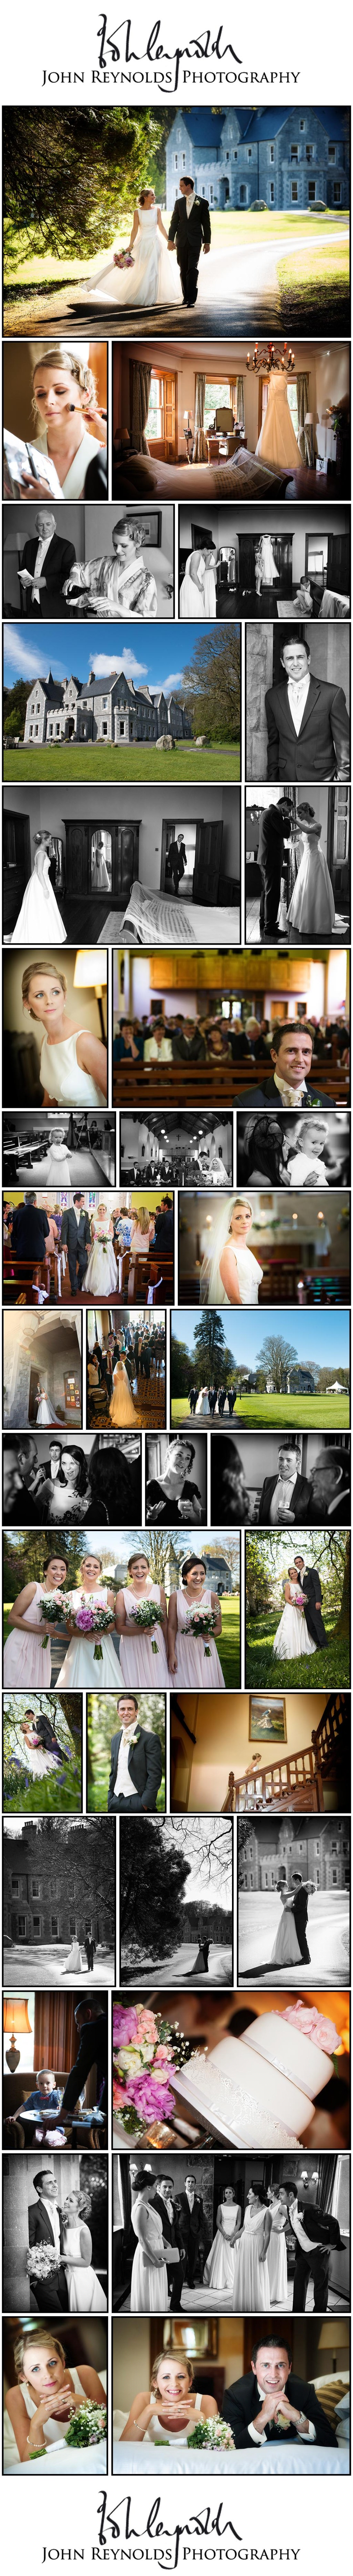 Blog Collage-Caragh & Conor